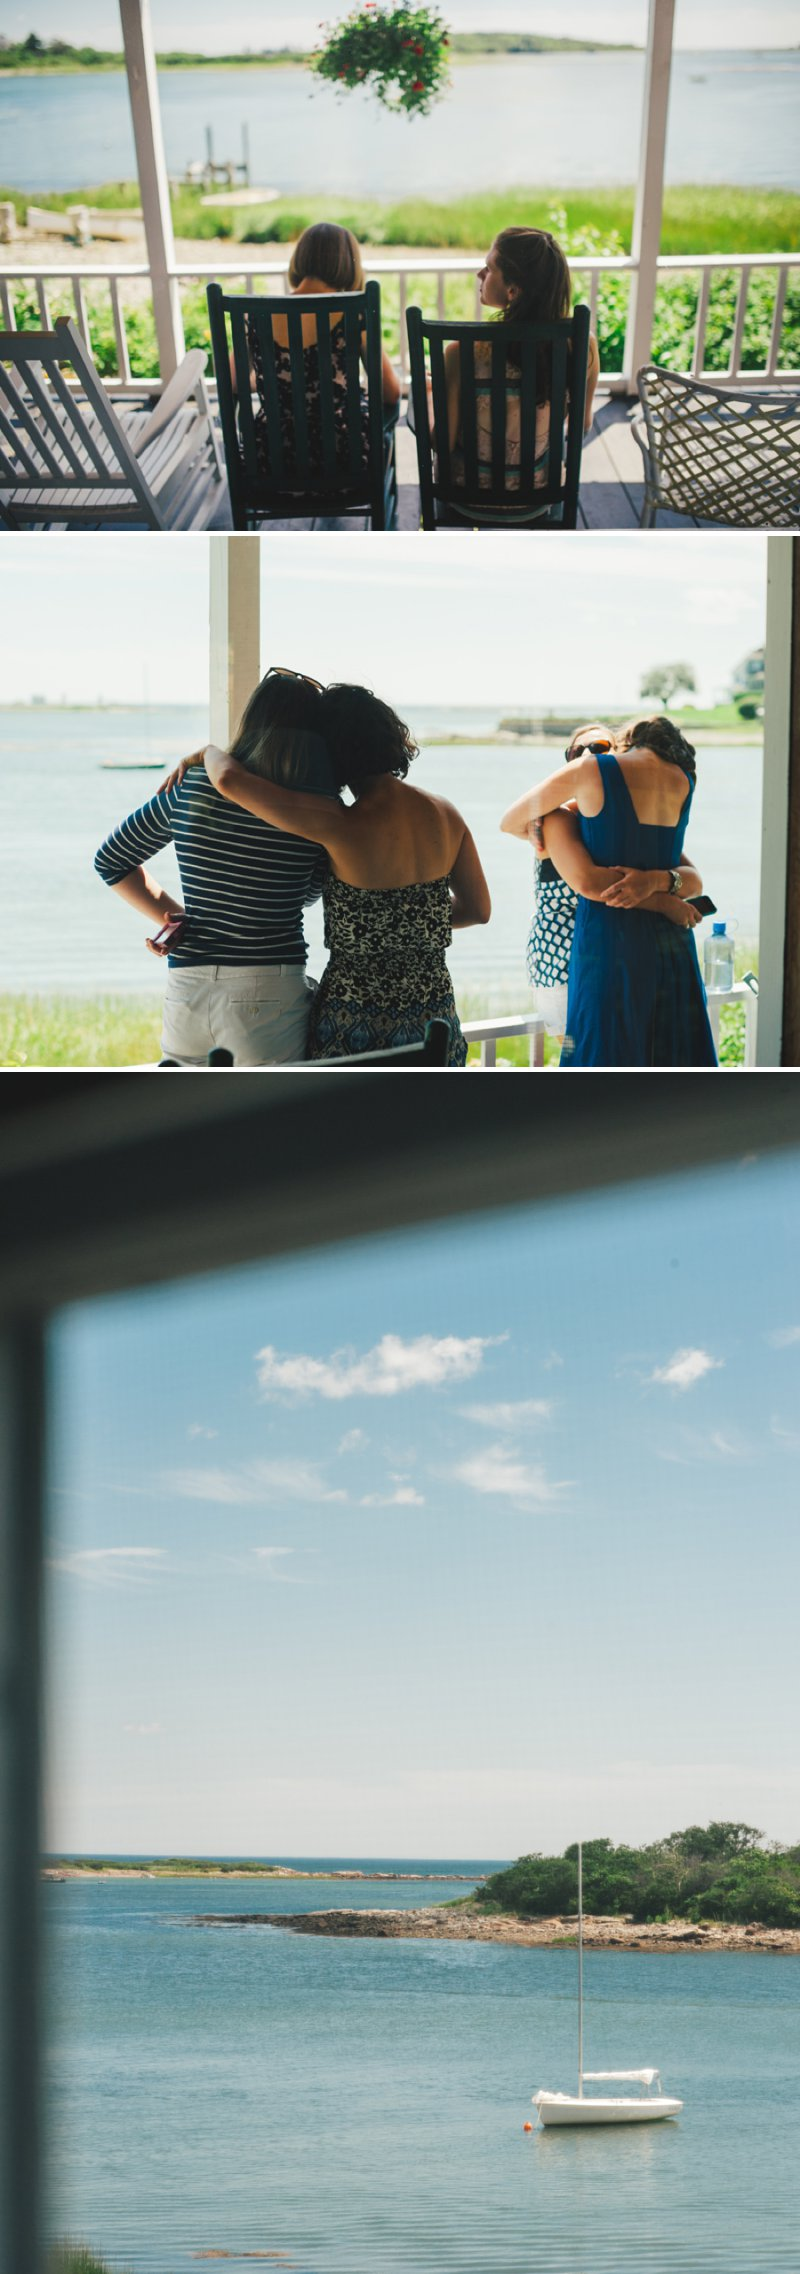 Elegant Wedding By The Sea In Maine USA With Bride In J Crew Dress And Groom In Navy Banana Republic Suit With An Outdoor Ceremony At The Brides Family Home With Beautiful Photography From Rebekah J Murray 3